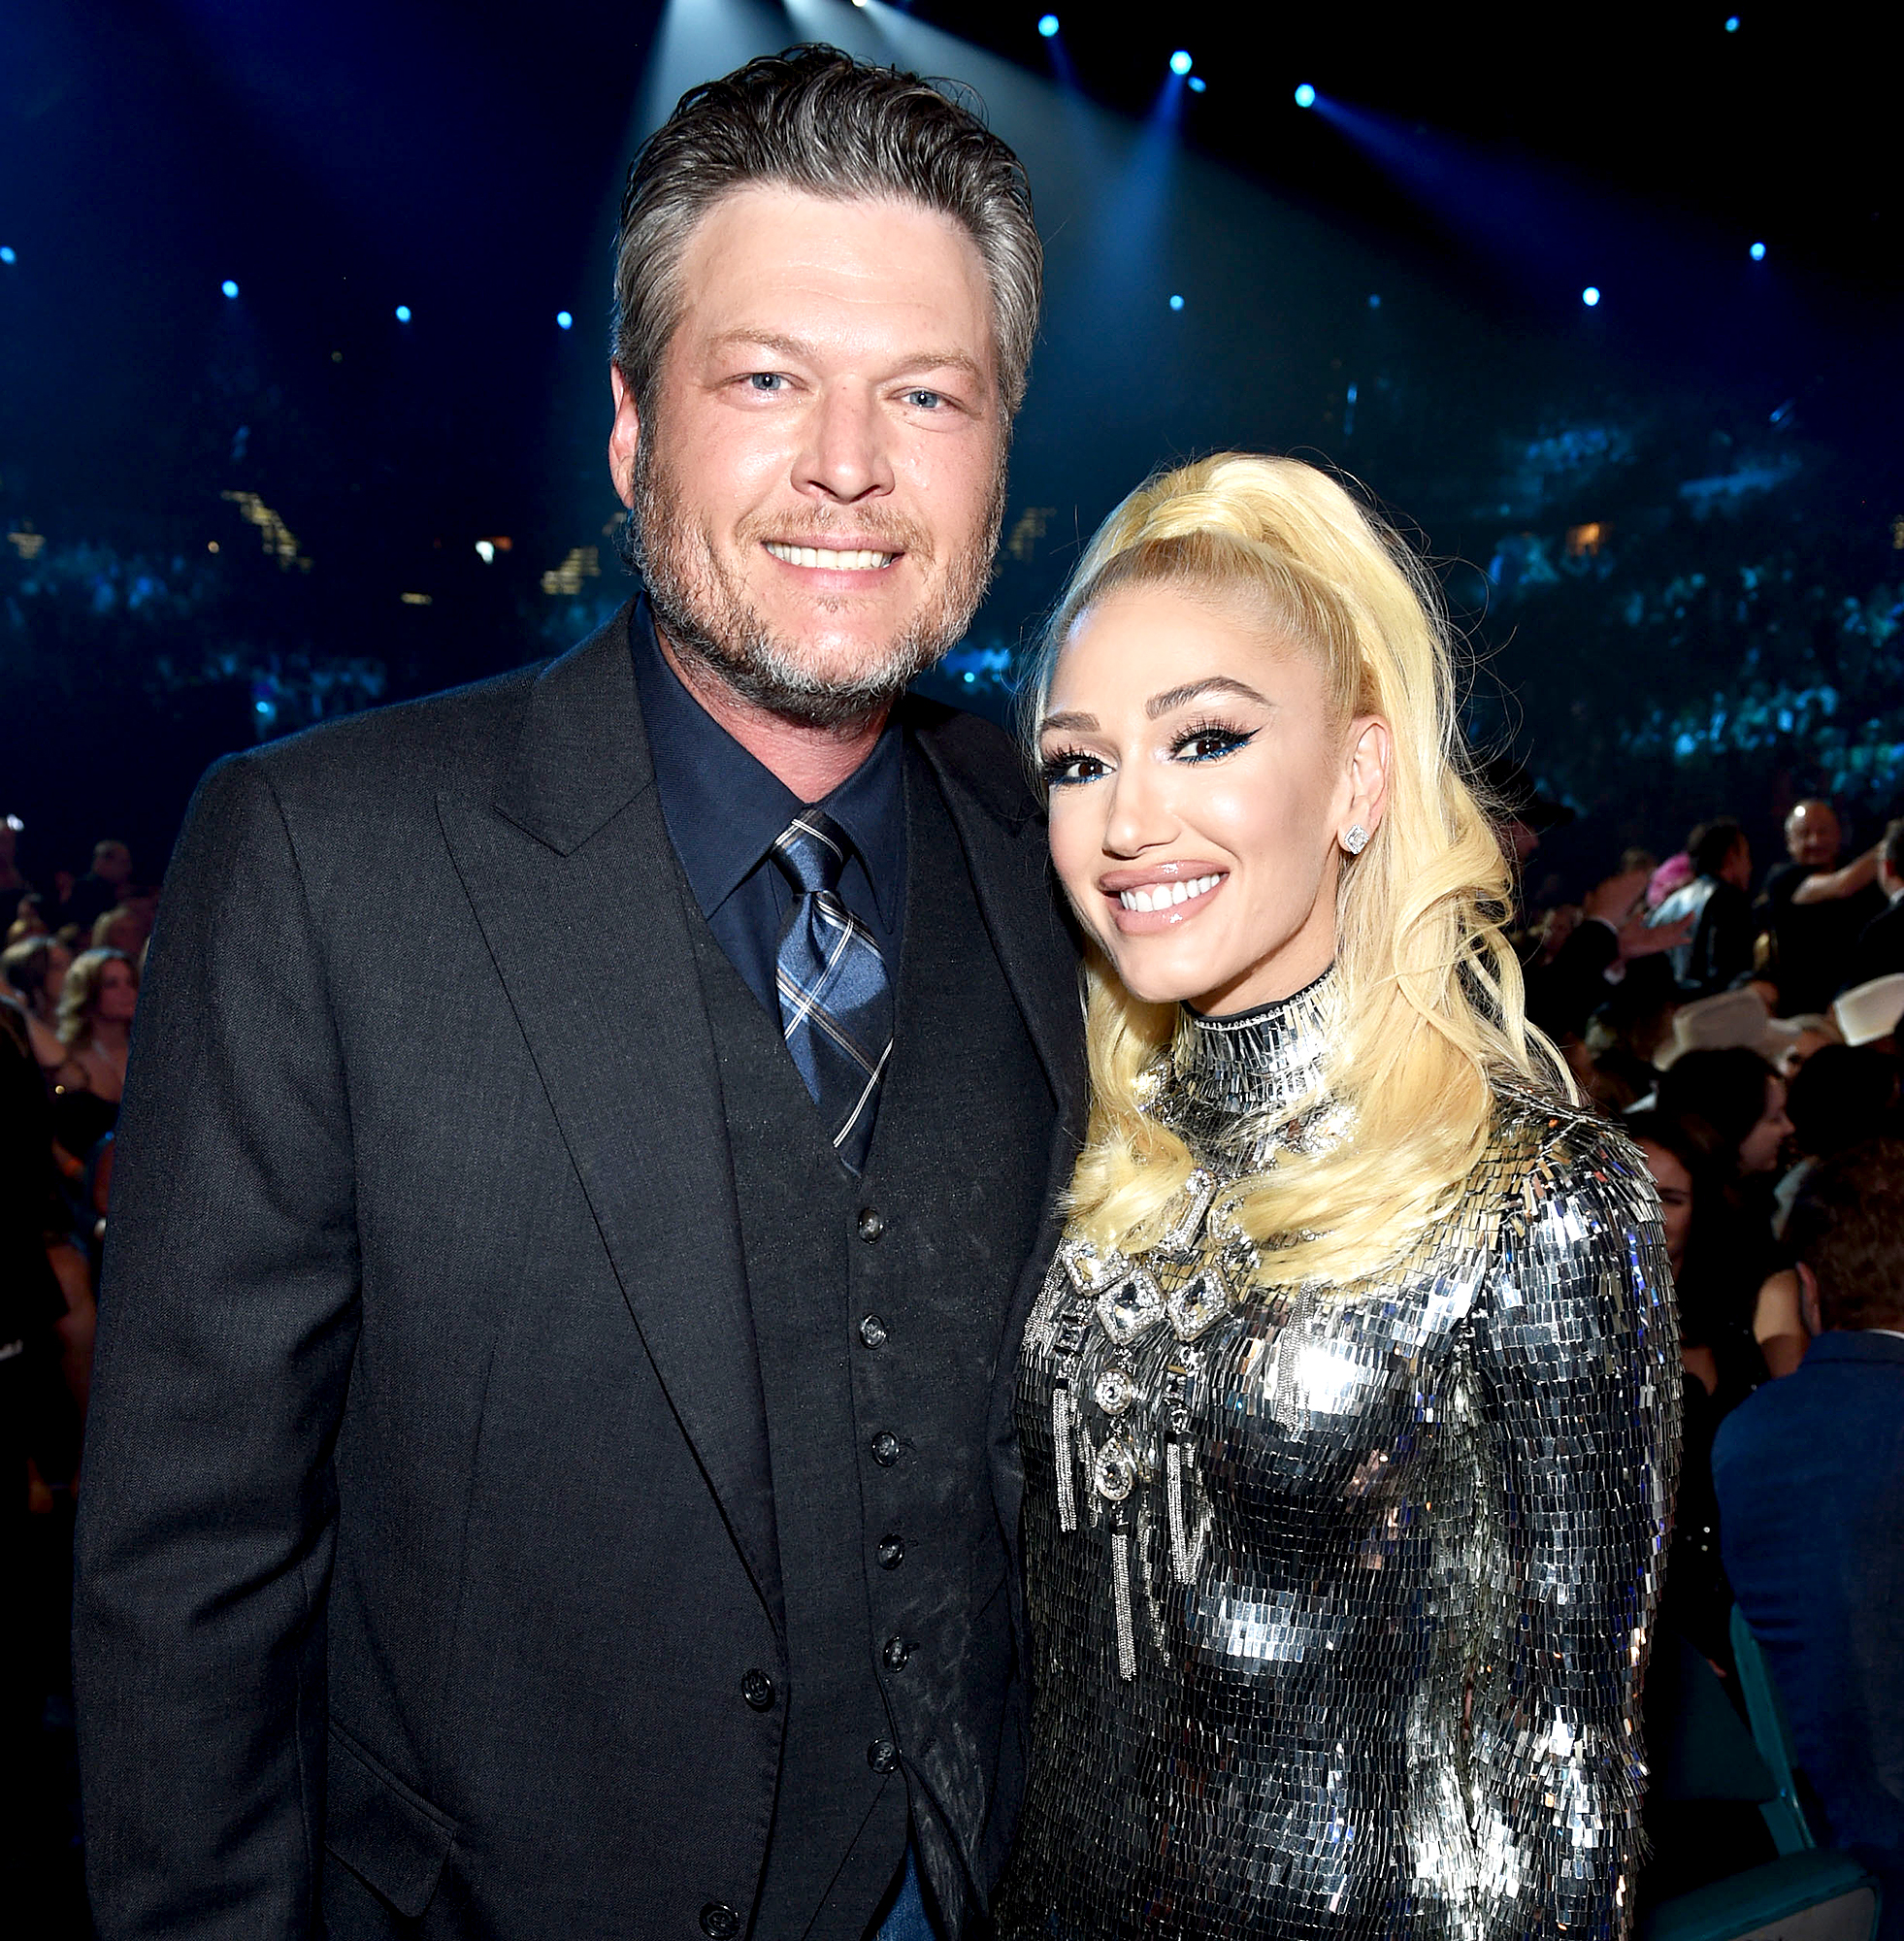 Blake-Shelton-Gwen-Stefani - Blake Shelton and Gwen Stefani pose in the audience during the 54th Academy Of Country Music Awards at MGM Grand Garden Arena on April 07, 2019 in Las Vegas, Nevada.